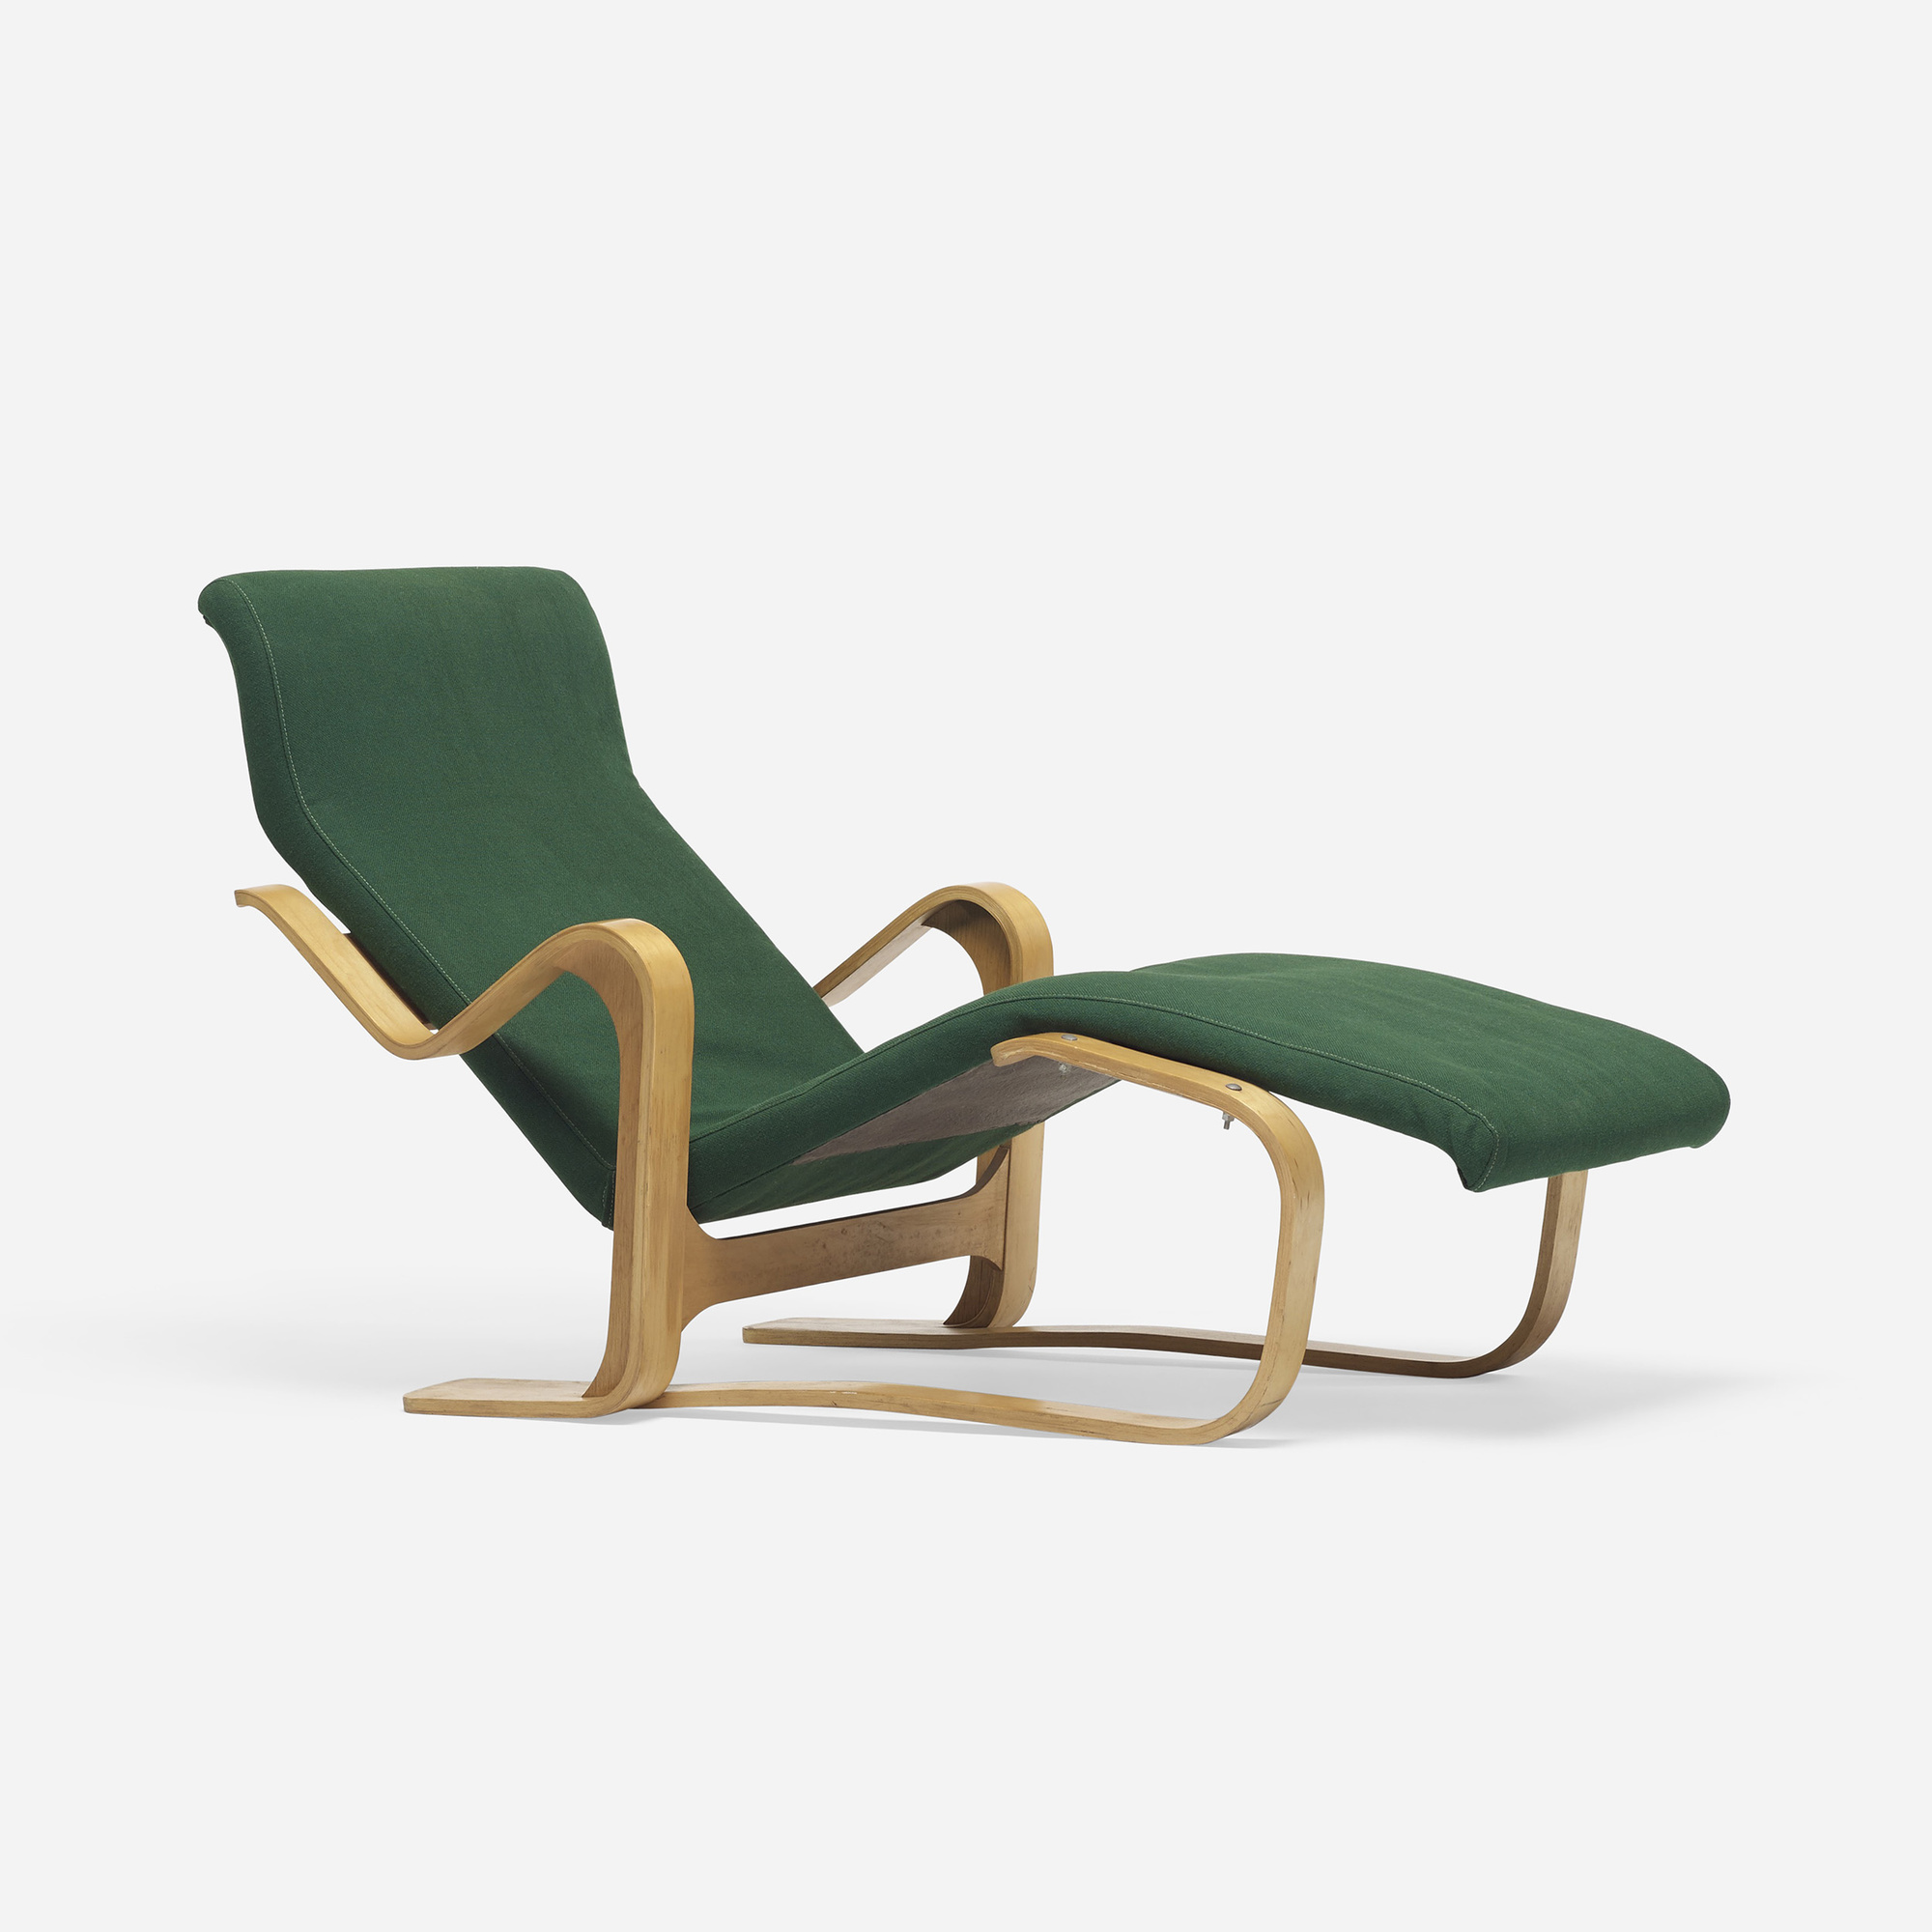 185 Marcel Breuer Long Chaise 1 Of 3